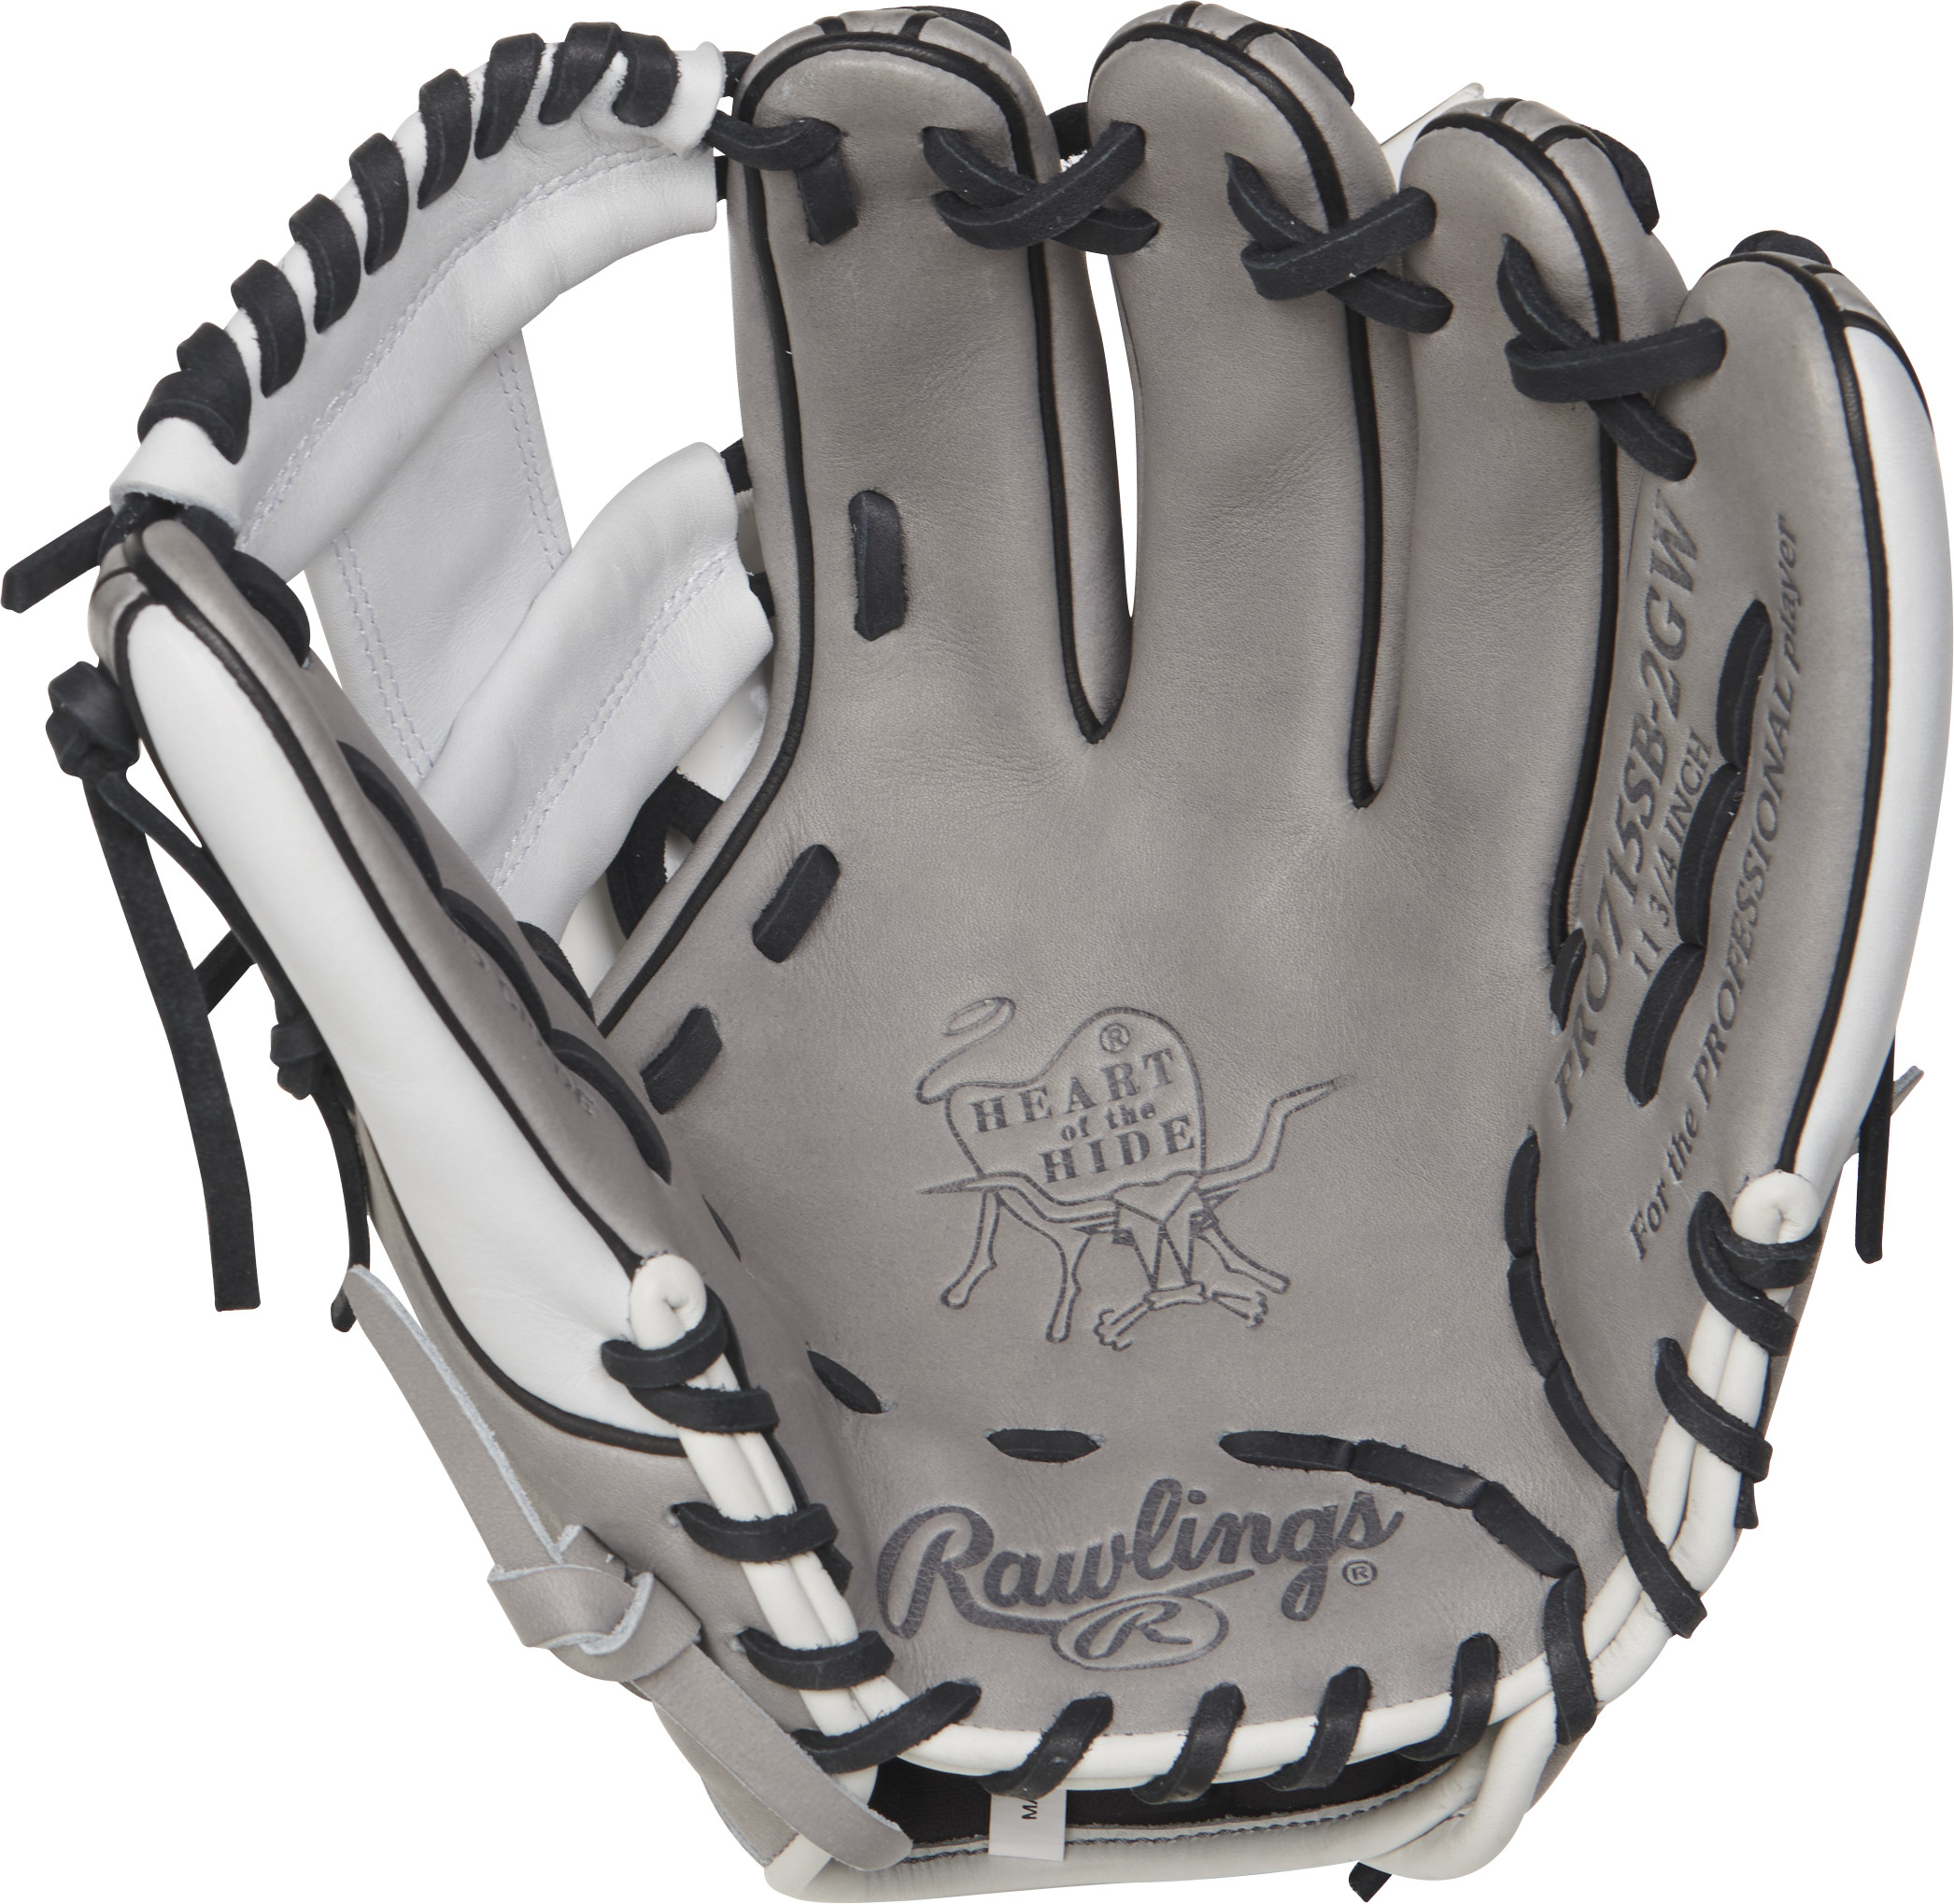 http://www.bestbatdeals.com/images/gloves/rawlings/PRO715SB-2GW-1.jpg